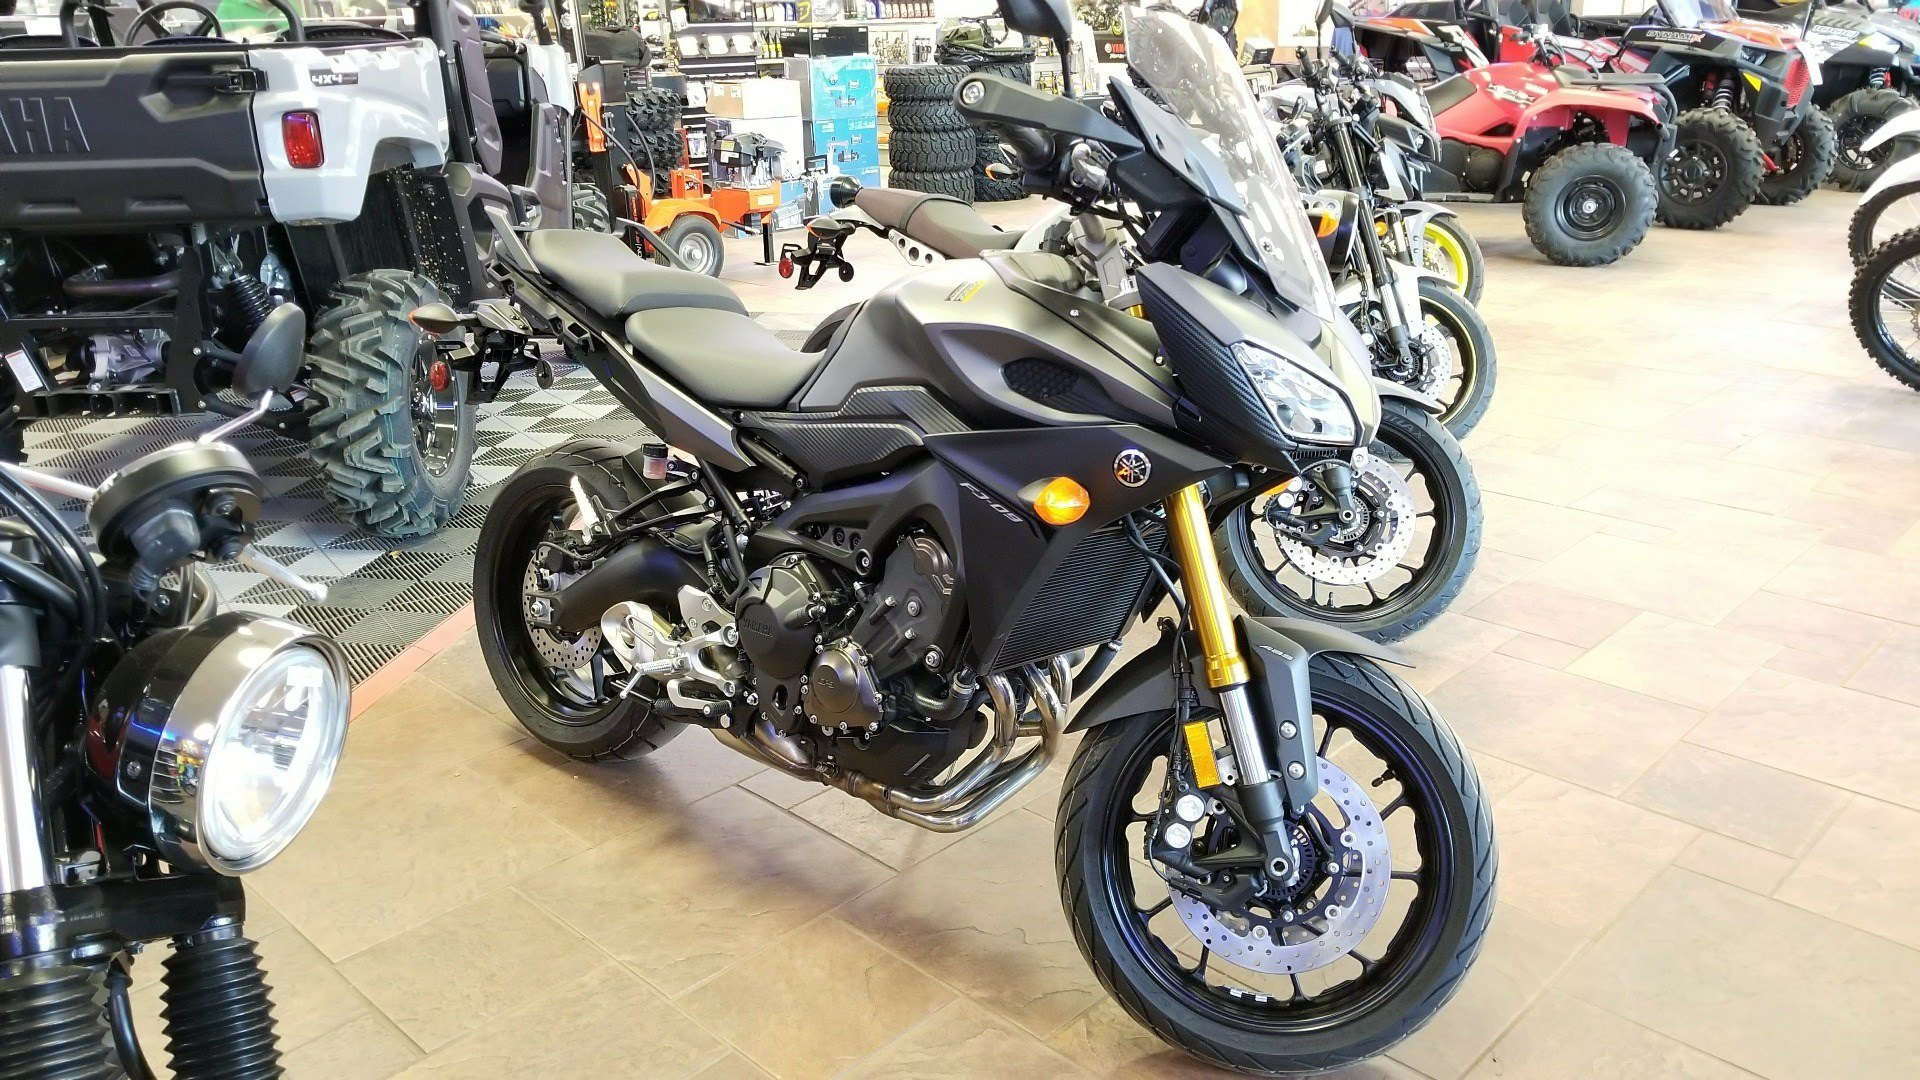 2015 Yamaha FJ-09 for sale 16012